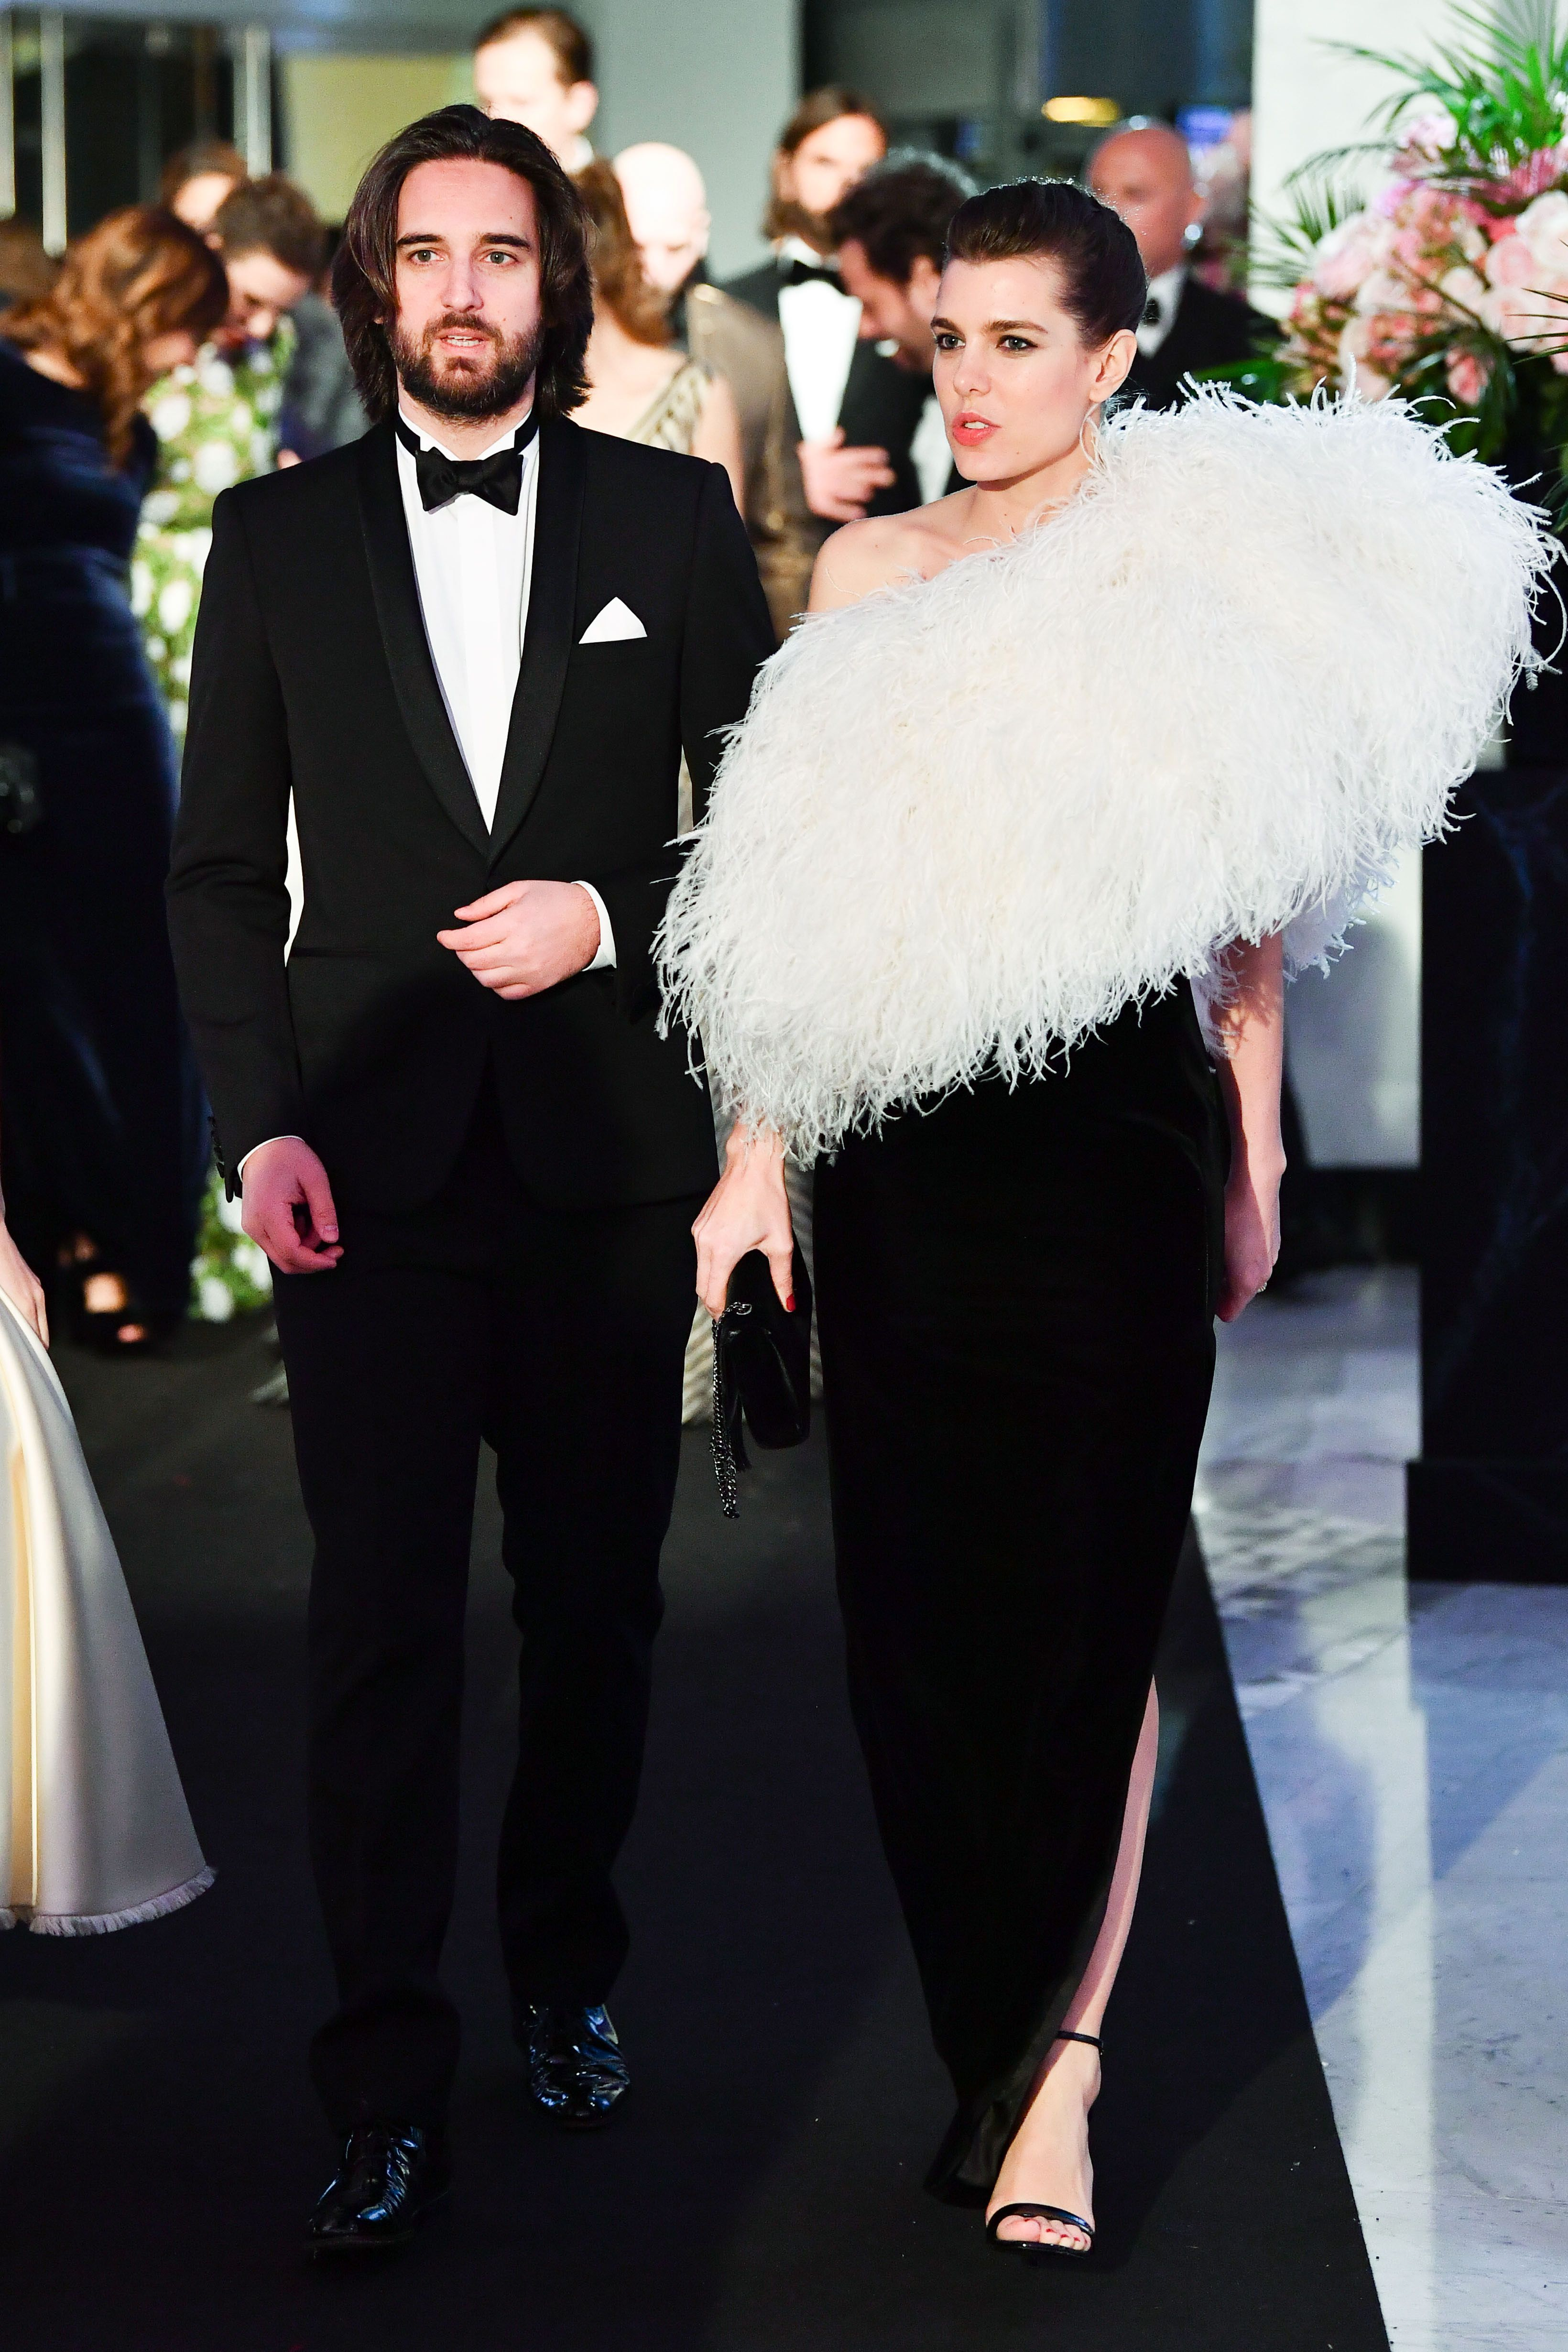 Charlotte Casiraghi's Wedding to Dimitri Rassam Is Reportedly This Summer—Here's Everything We Know